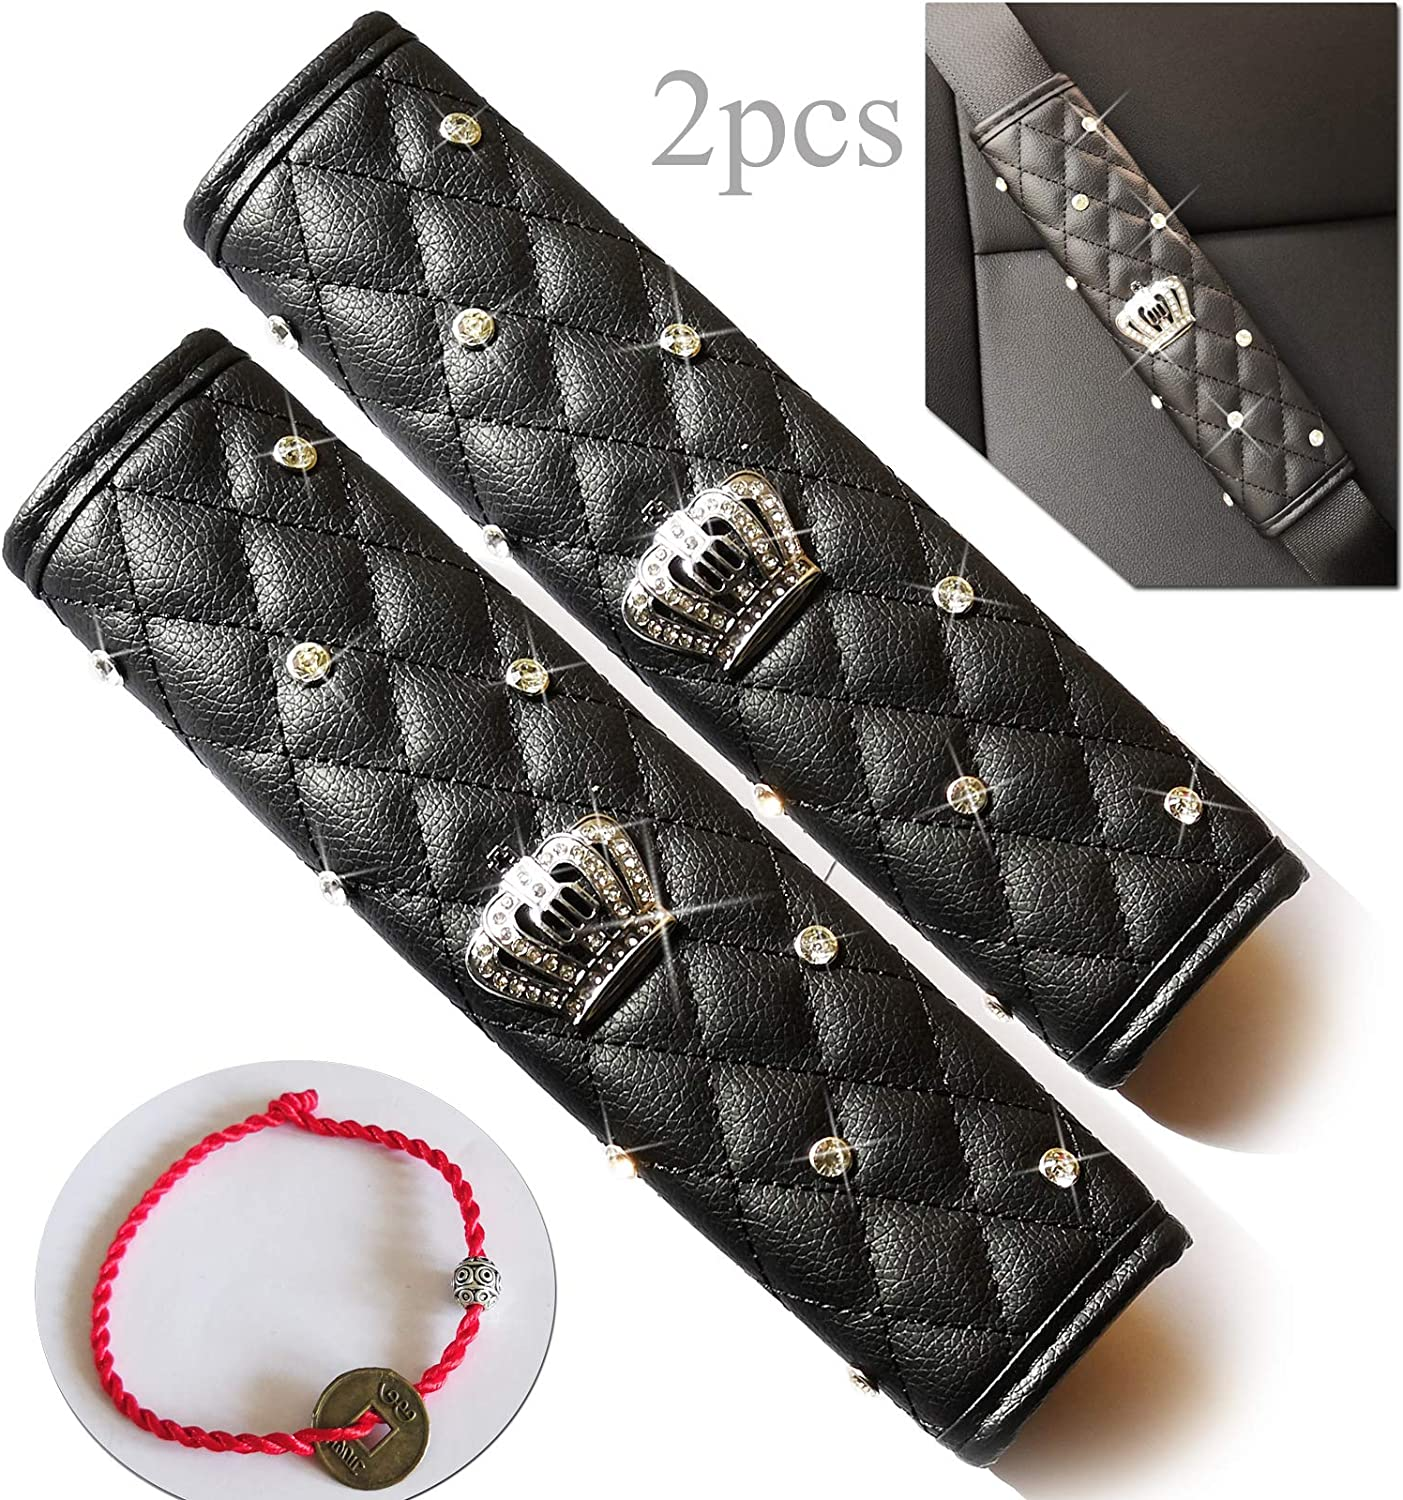 Black Hai Hong Car Seat Belt Pads Cover 2 Packs Soft Leather Crystal Crown Shoulder Pads for All Car Owners for a More Comfortable Driving with A Handmade Silver Coin Good Luck Bracelet for Free